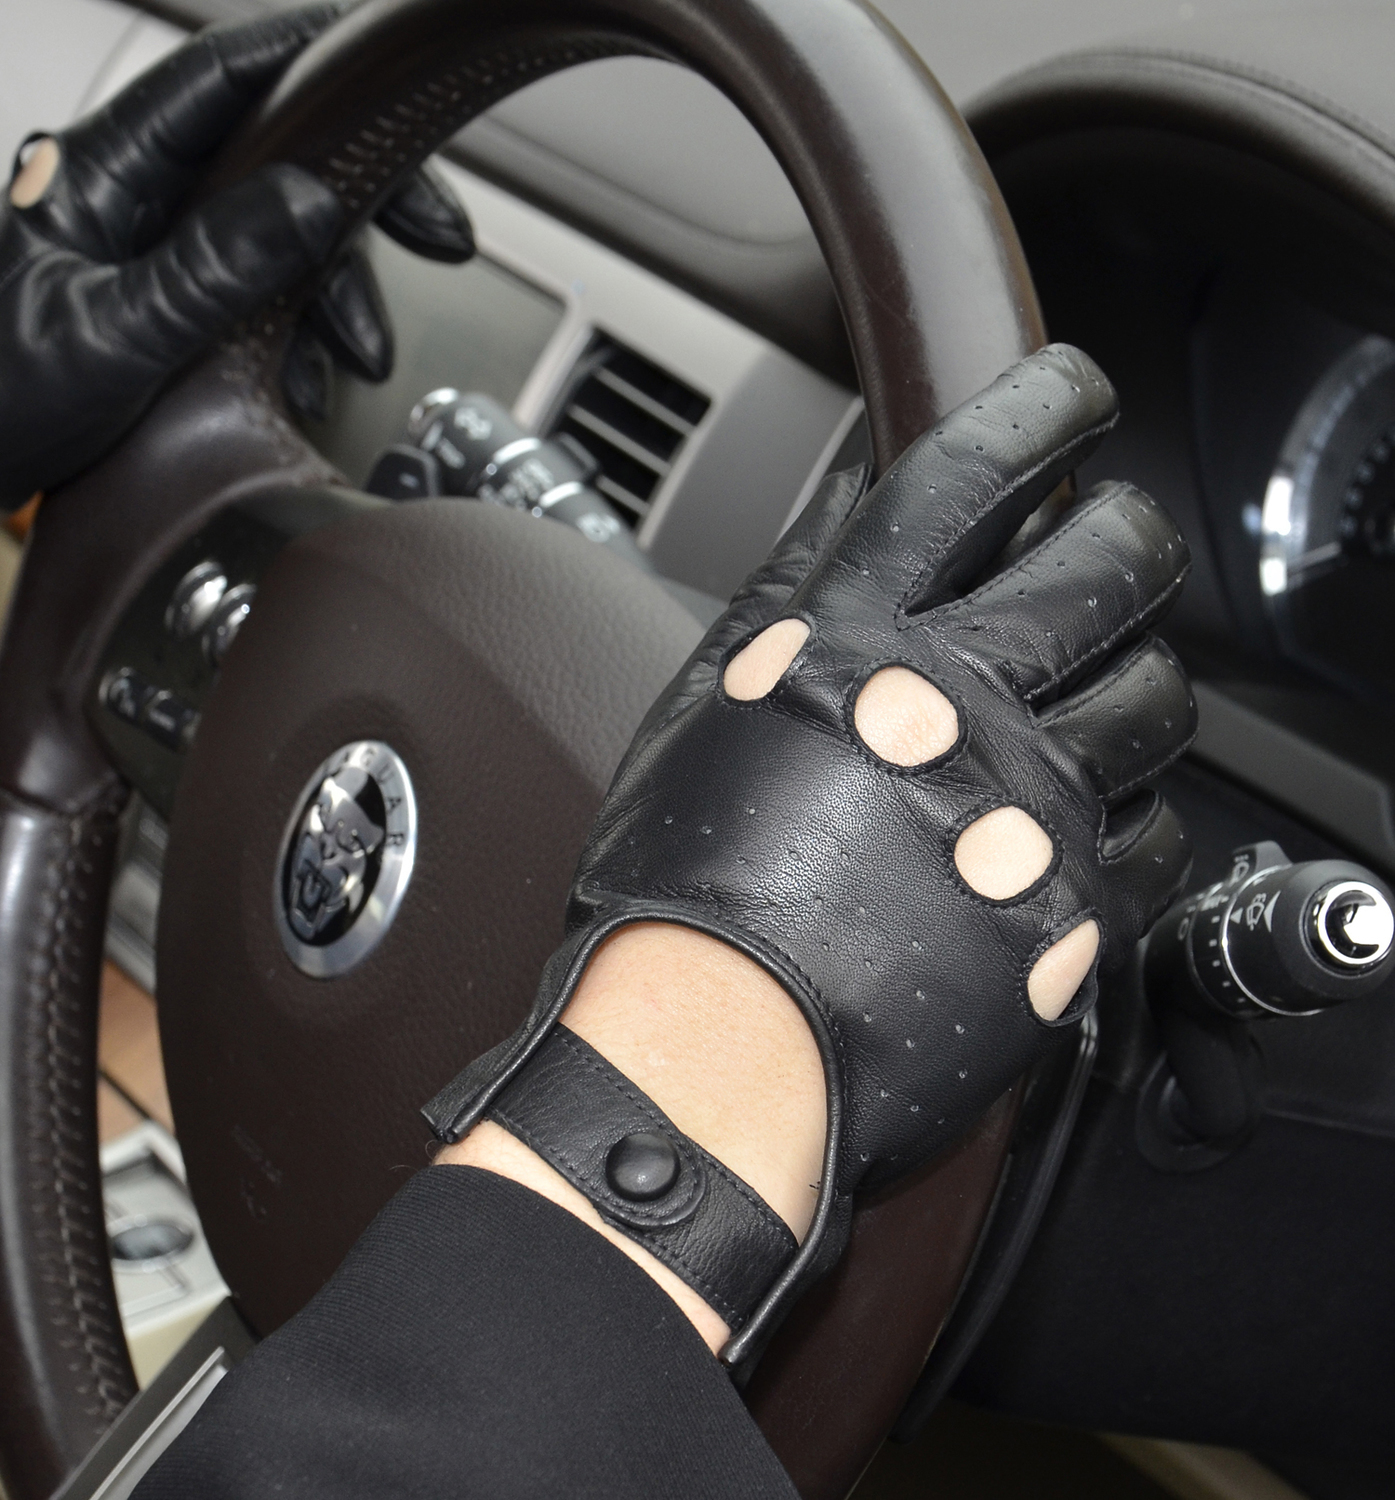 Men's Black Leather Driving Gloves cover